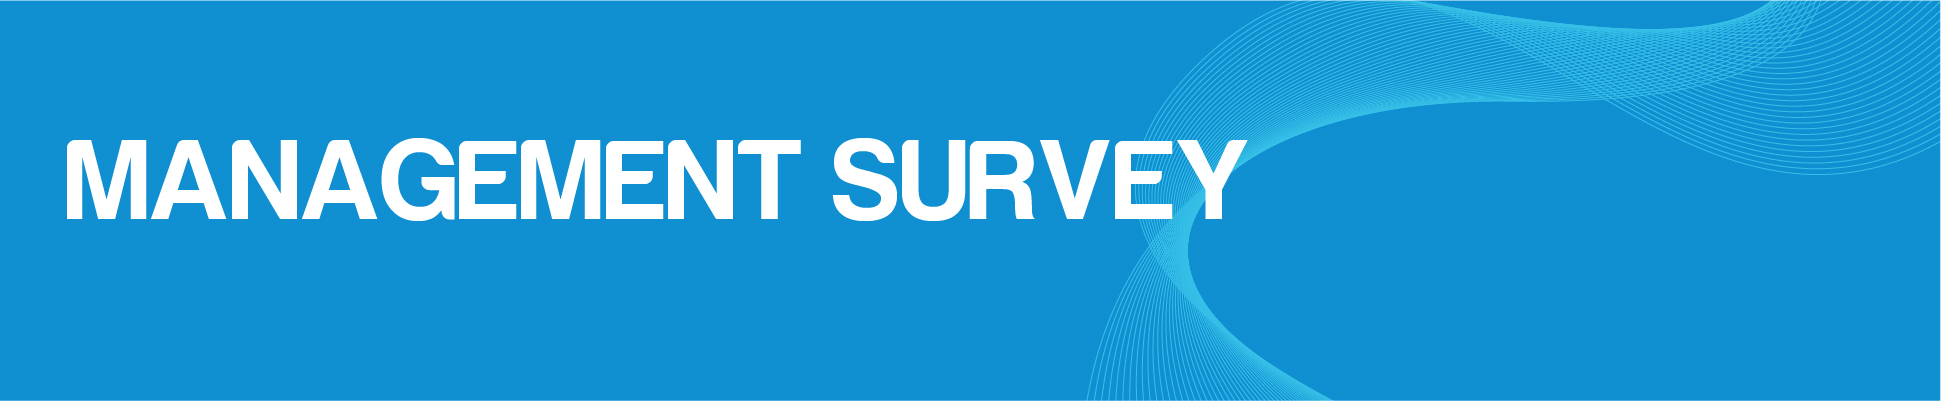 Management Survey Banner